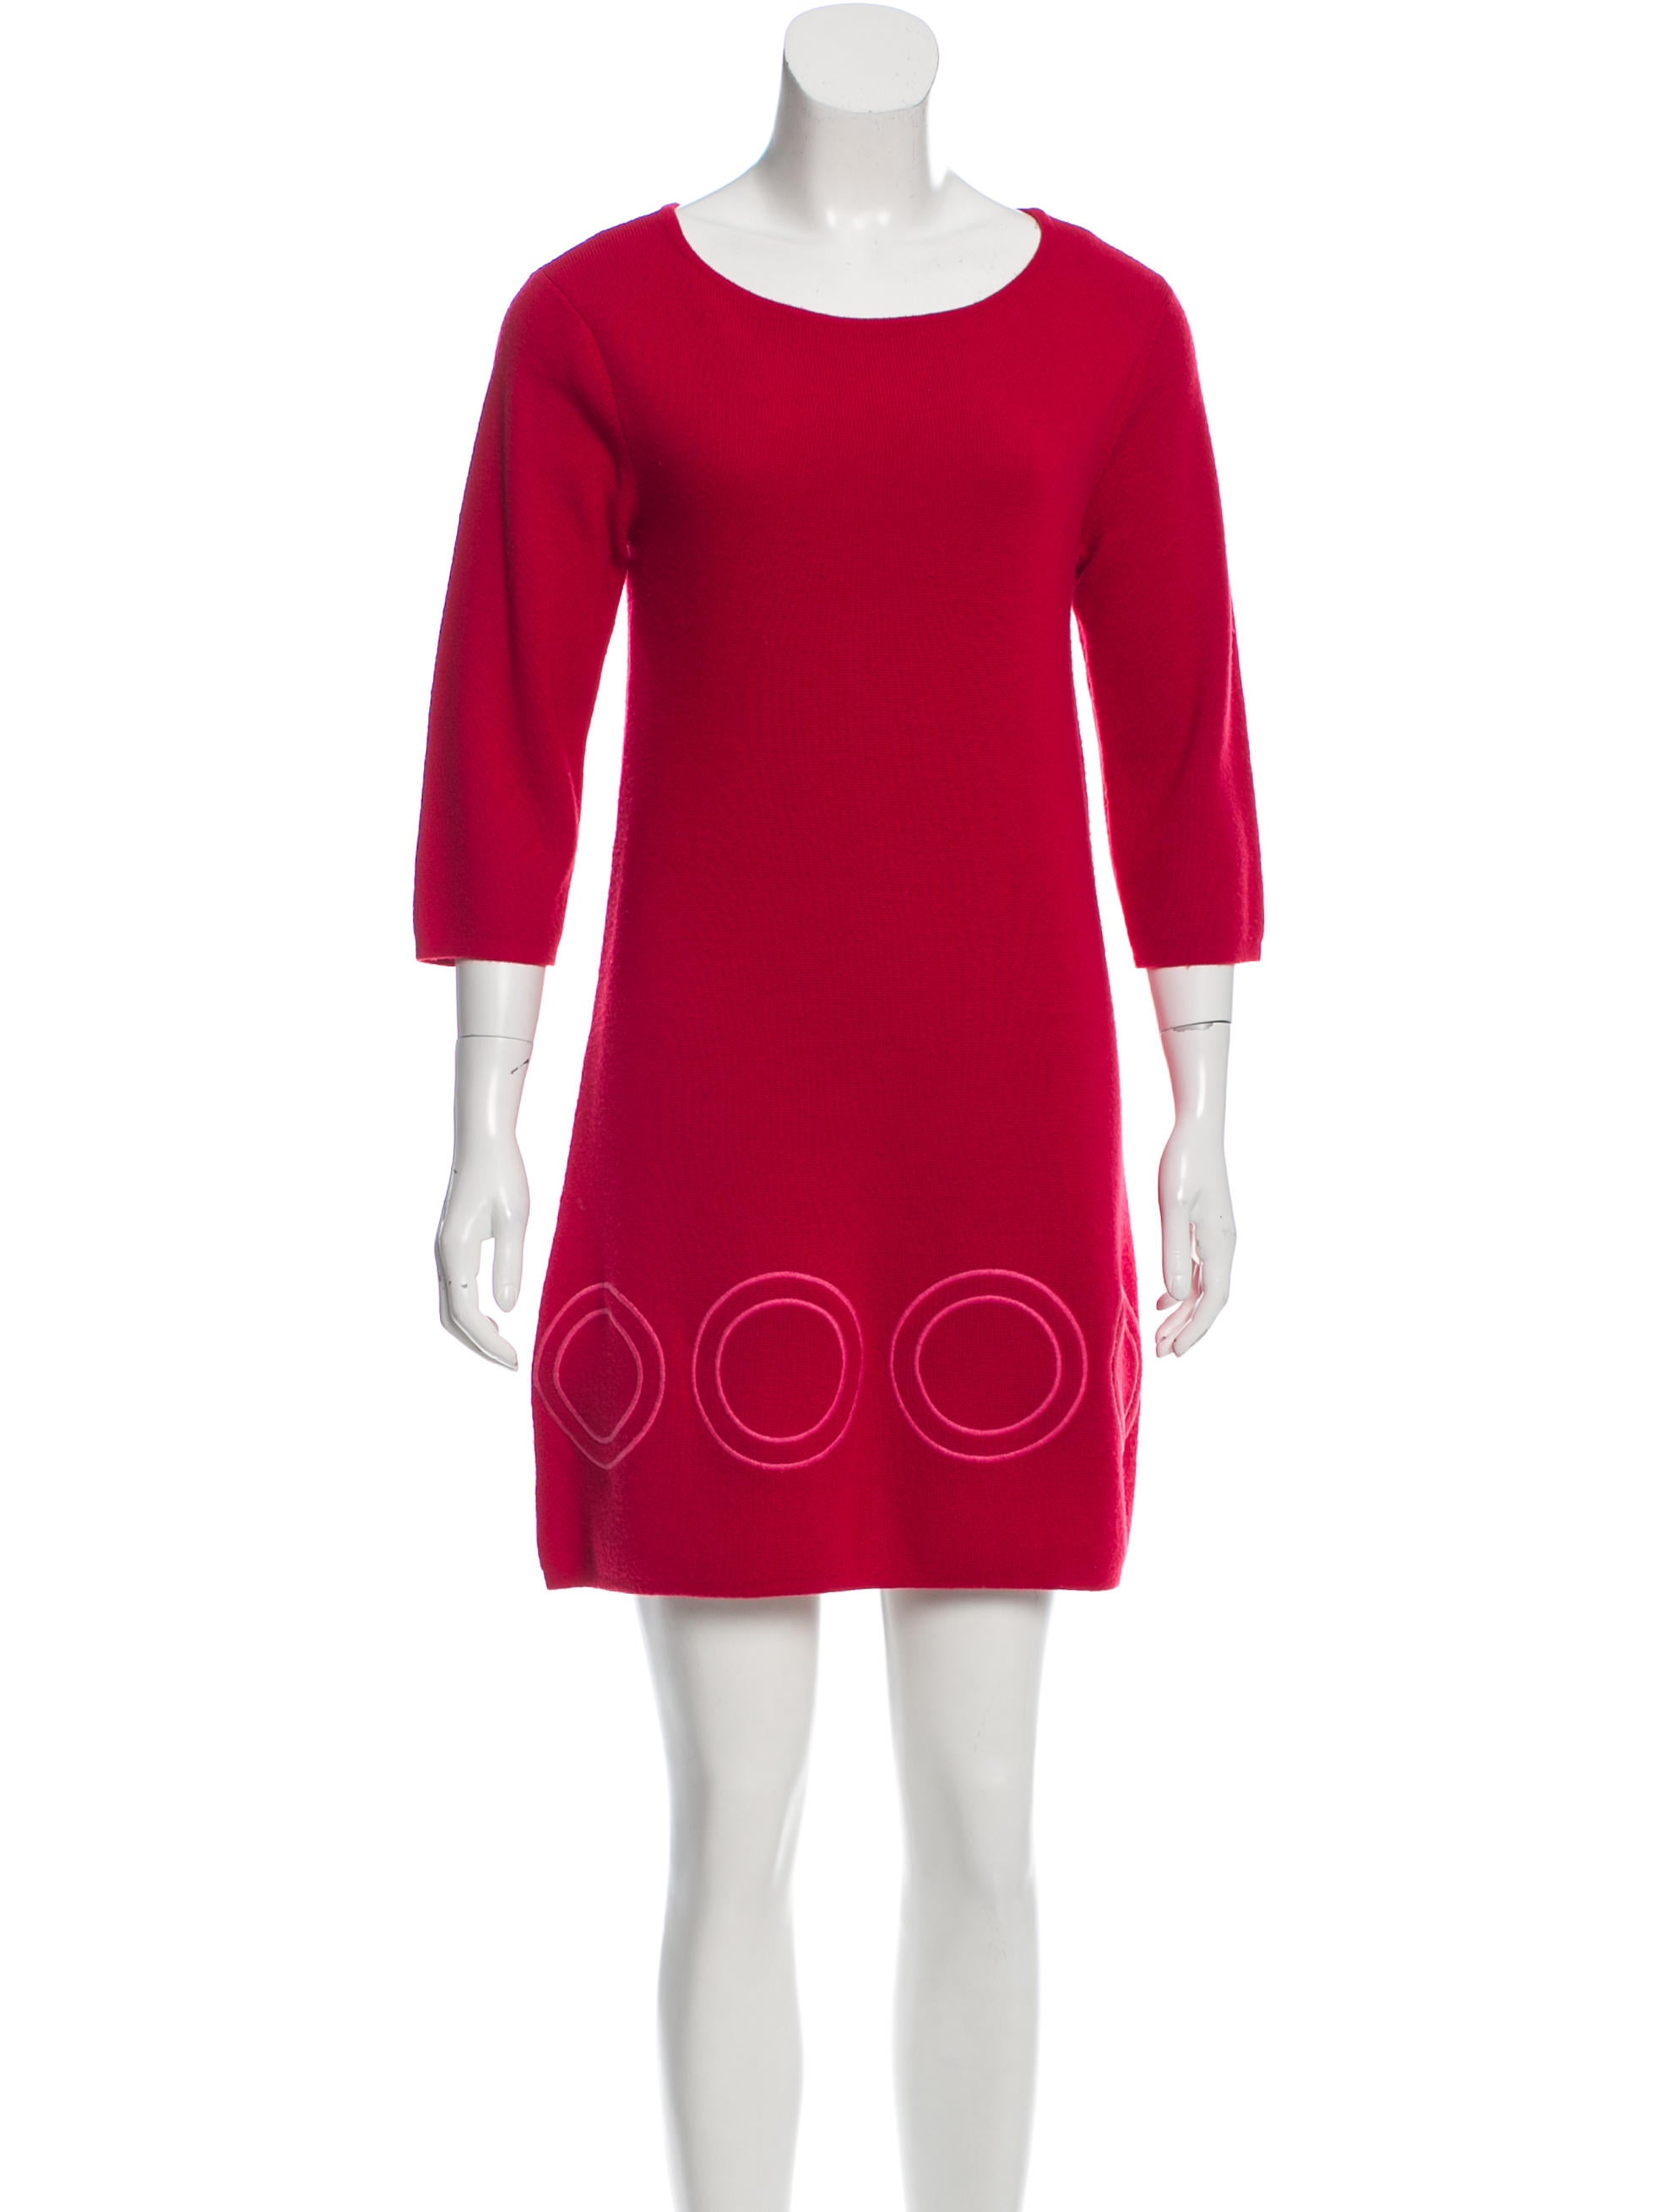 Alice + Olivia Wool Sweater Dress - Clothing - WAO49138 | The RealReal